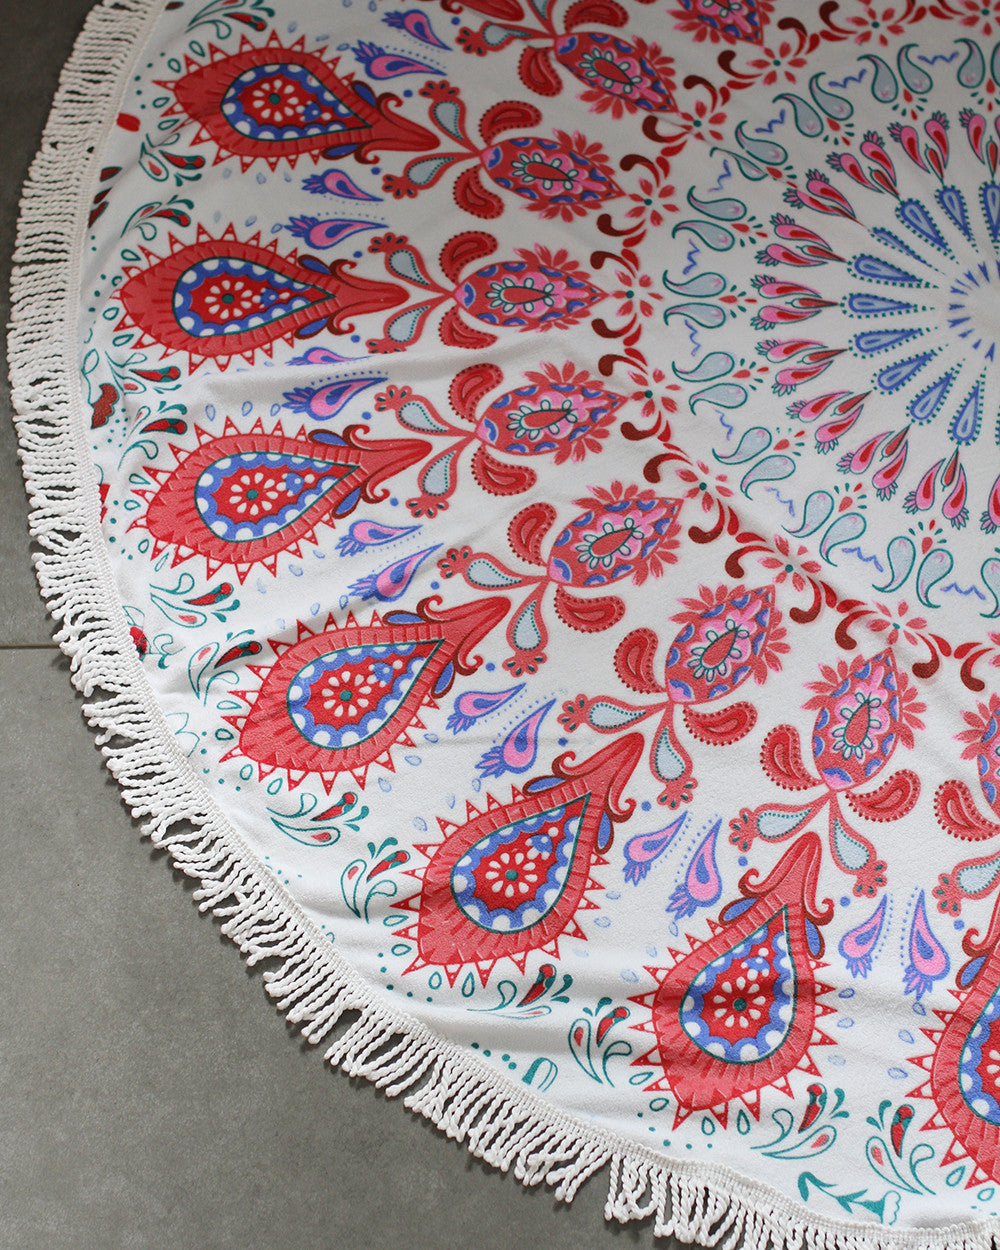 Boho Beach Tapestry Mandala Hippie Throw Blanket-Red - worthtryit.com